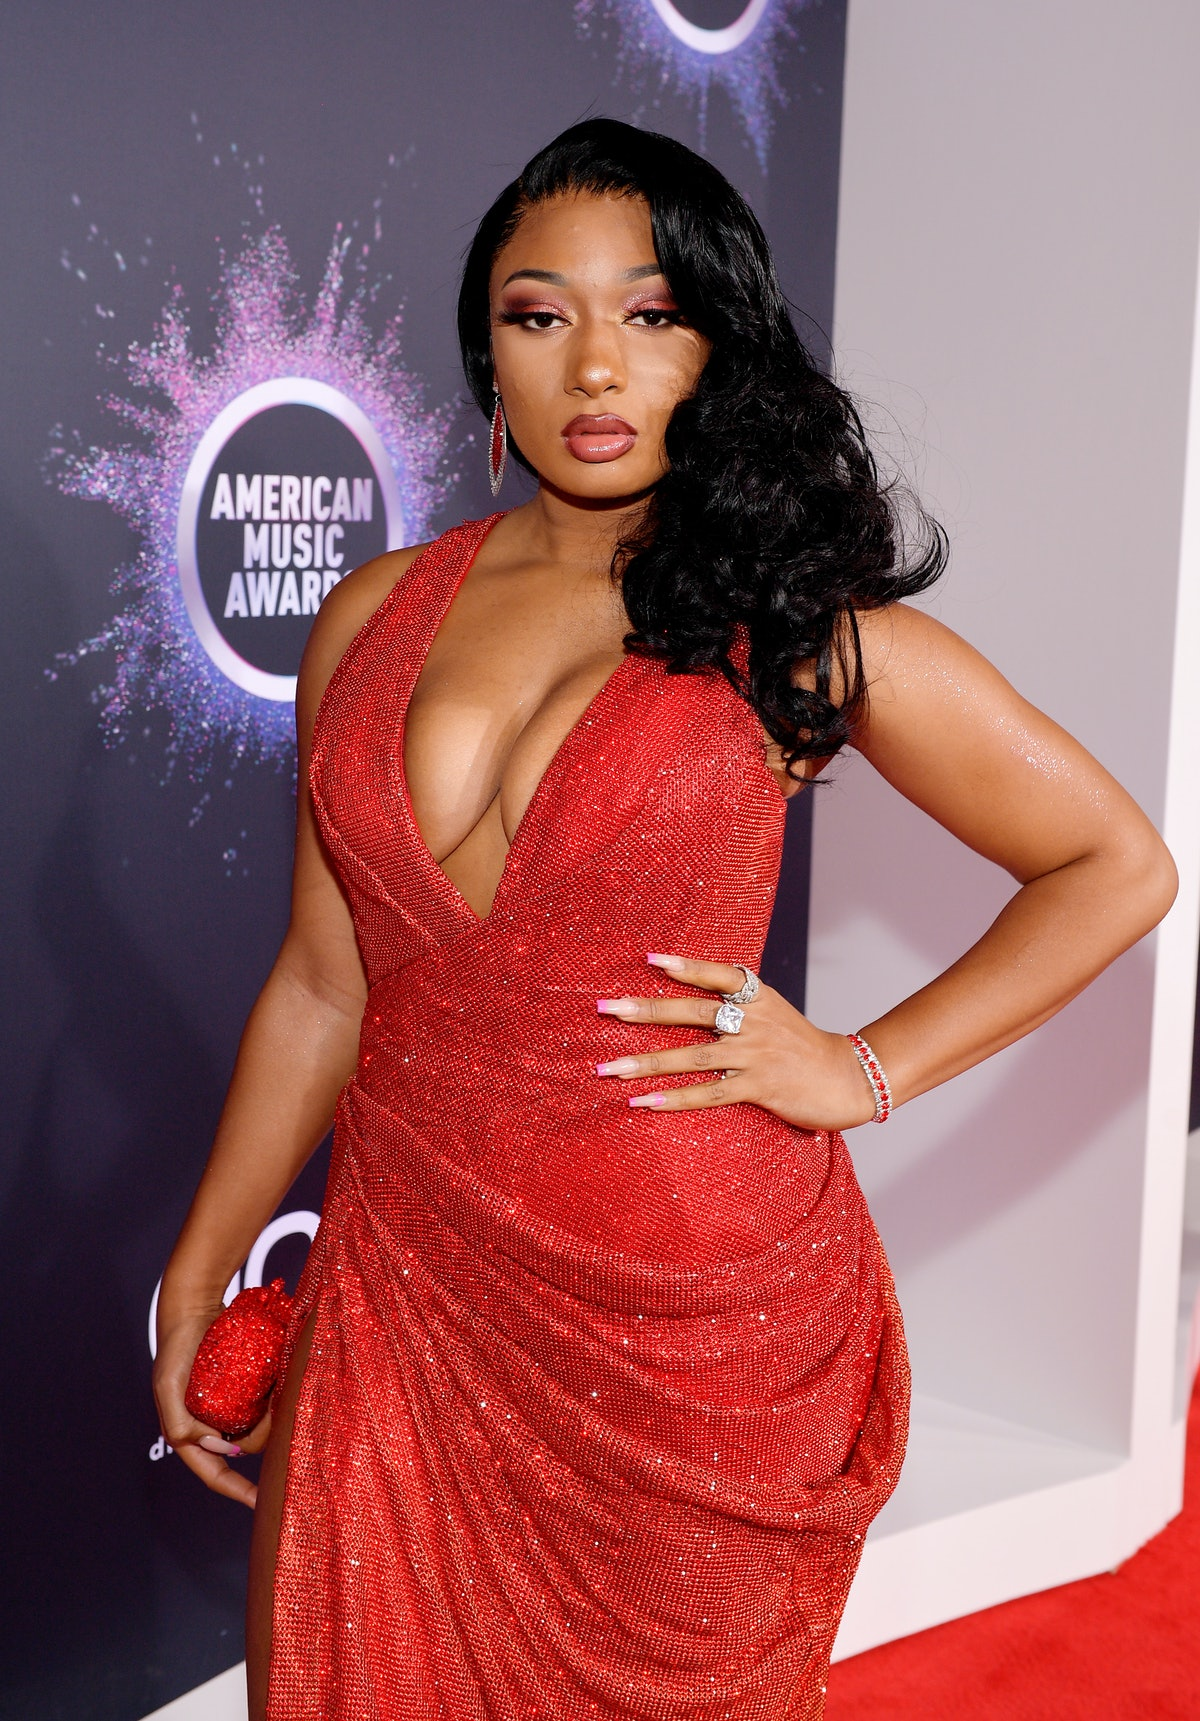 LOS ANGELES, CALIFORNIA - NOVEMBER 24: Megan Thee Stallion attends the 2019 American Music Awards at...